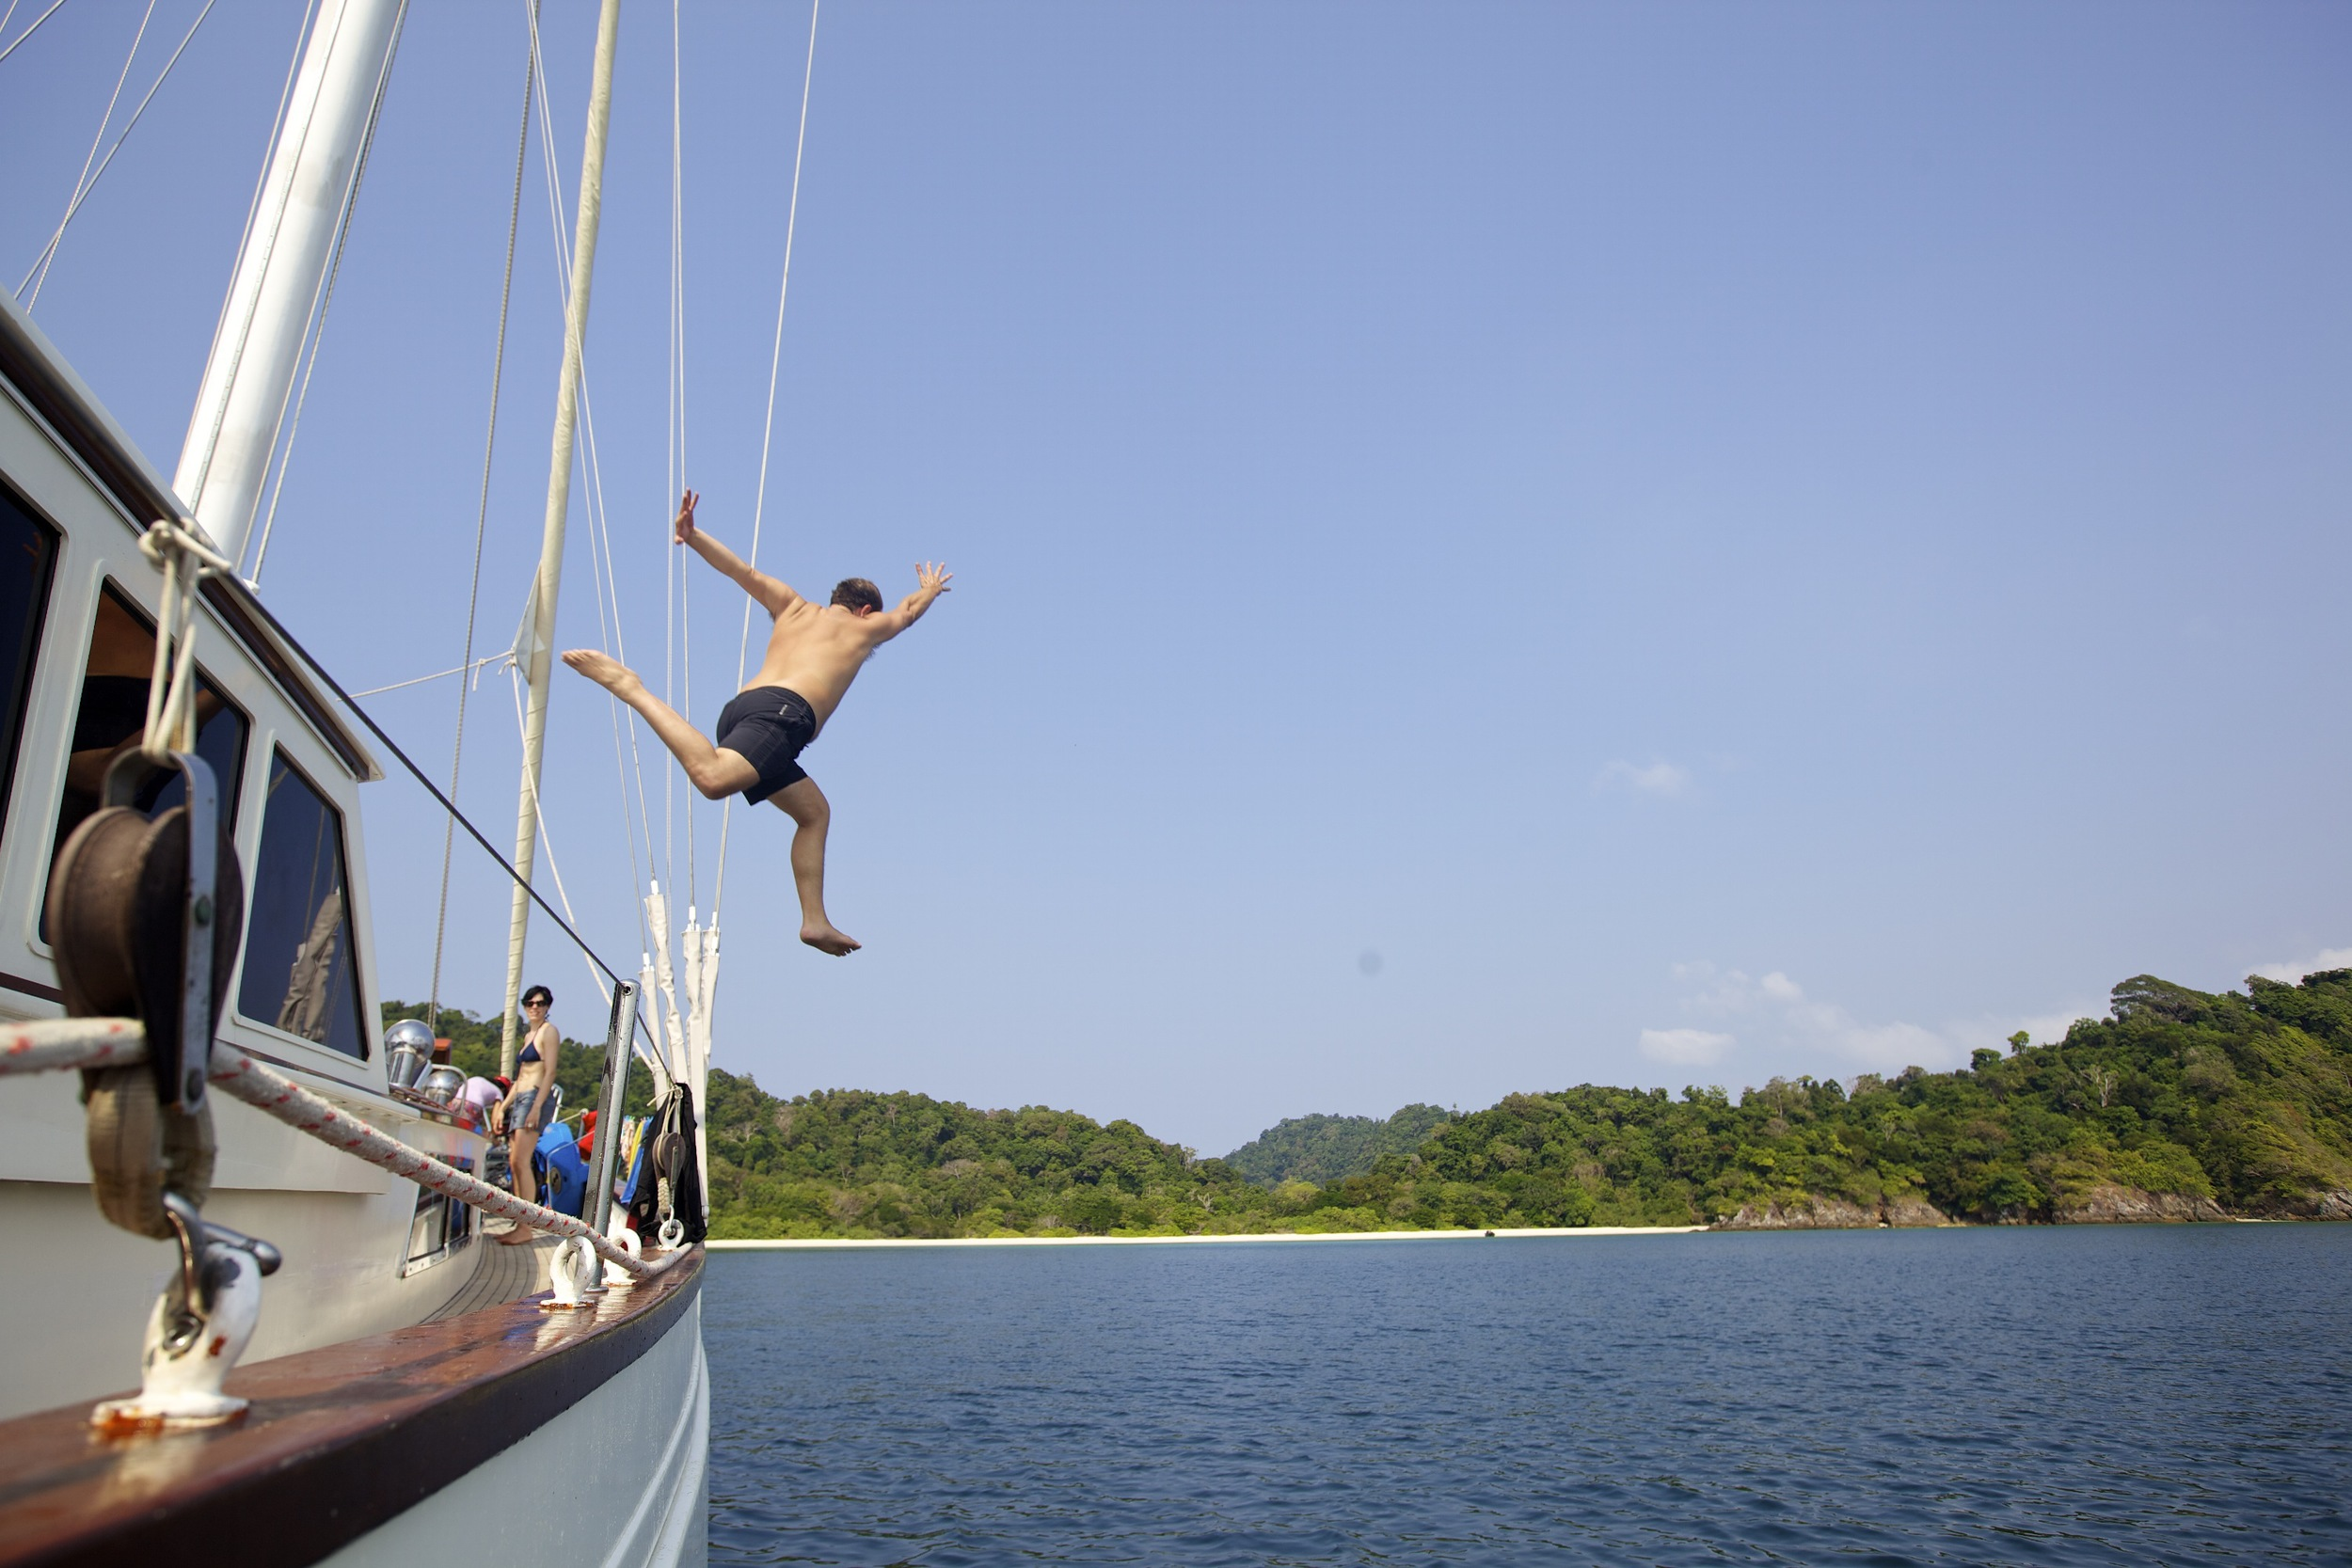 Jumping into the water next to a lonely island